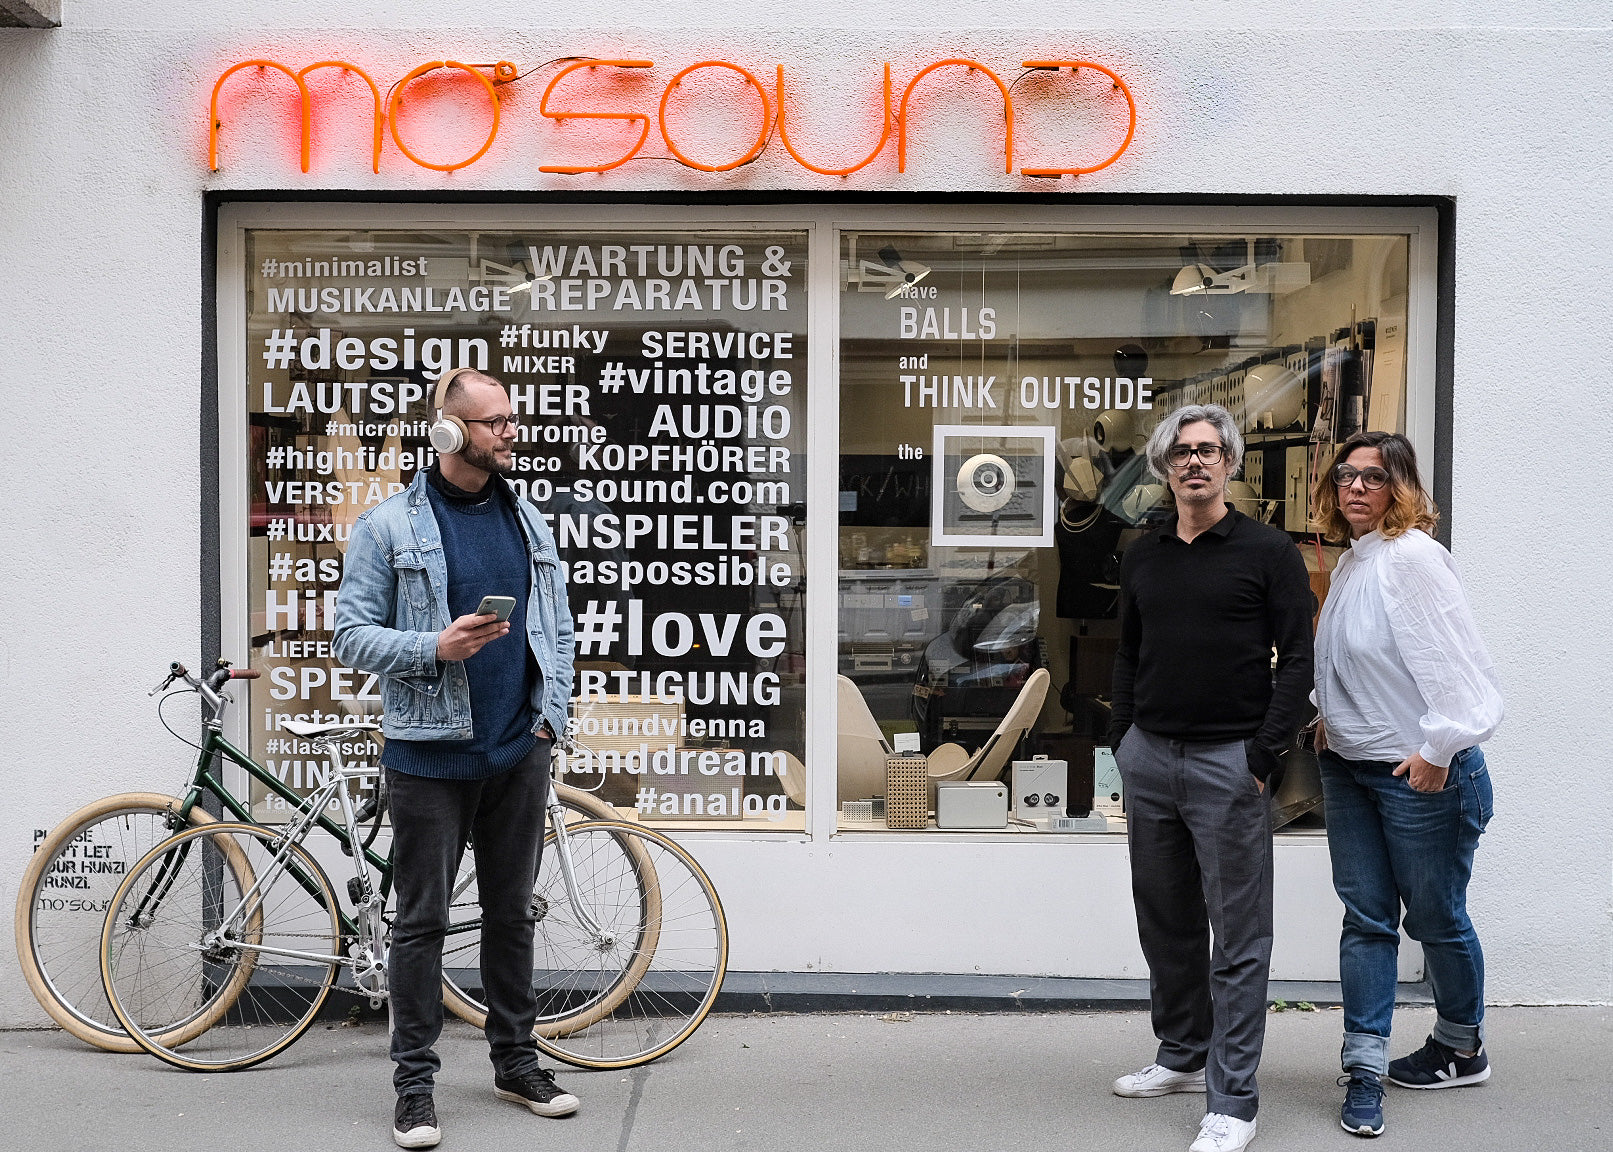 mo sound store, your Hi-Fi and audio store in Vienna